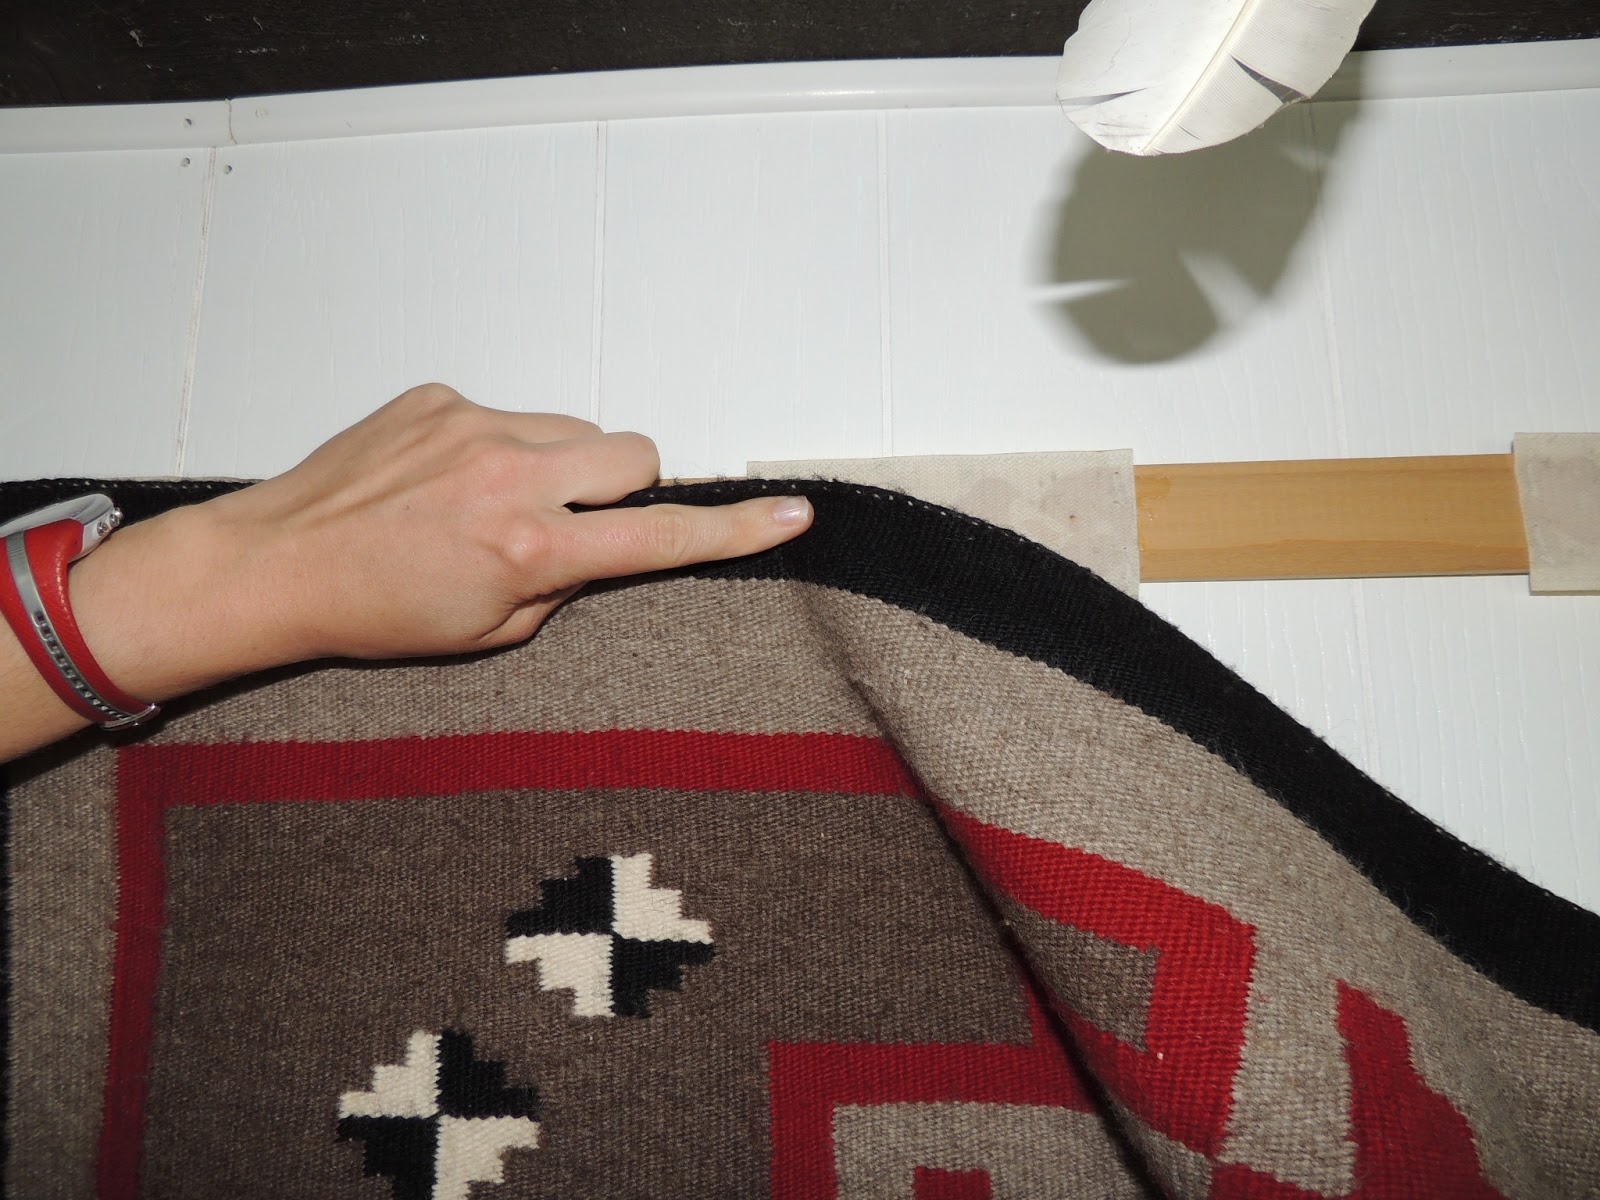 How To Hang A Rug On The Wall Navajo Rug Hanger | Roselawnlutheran